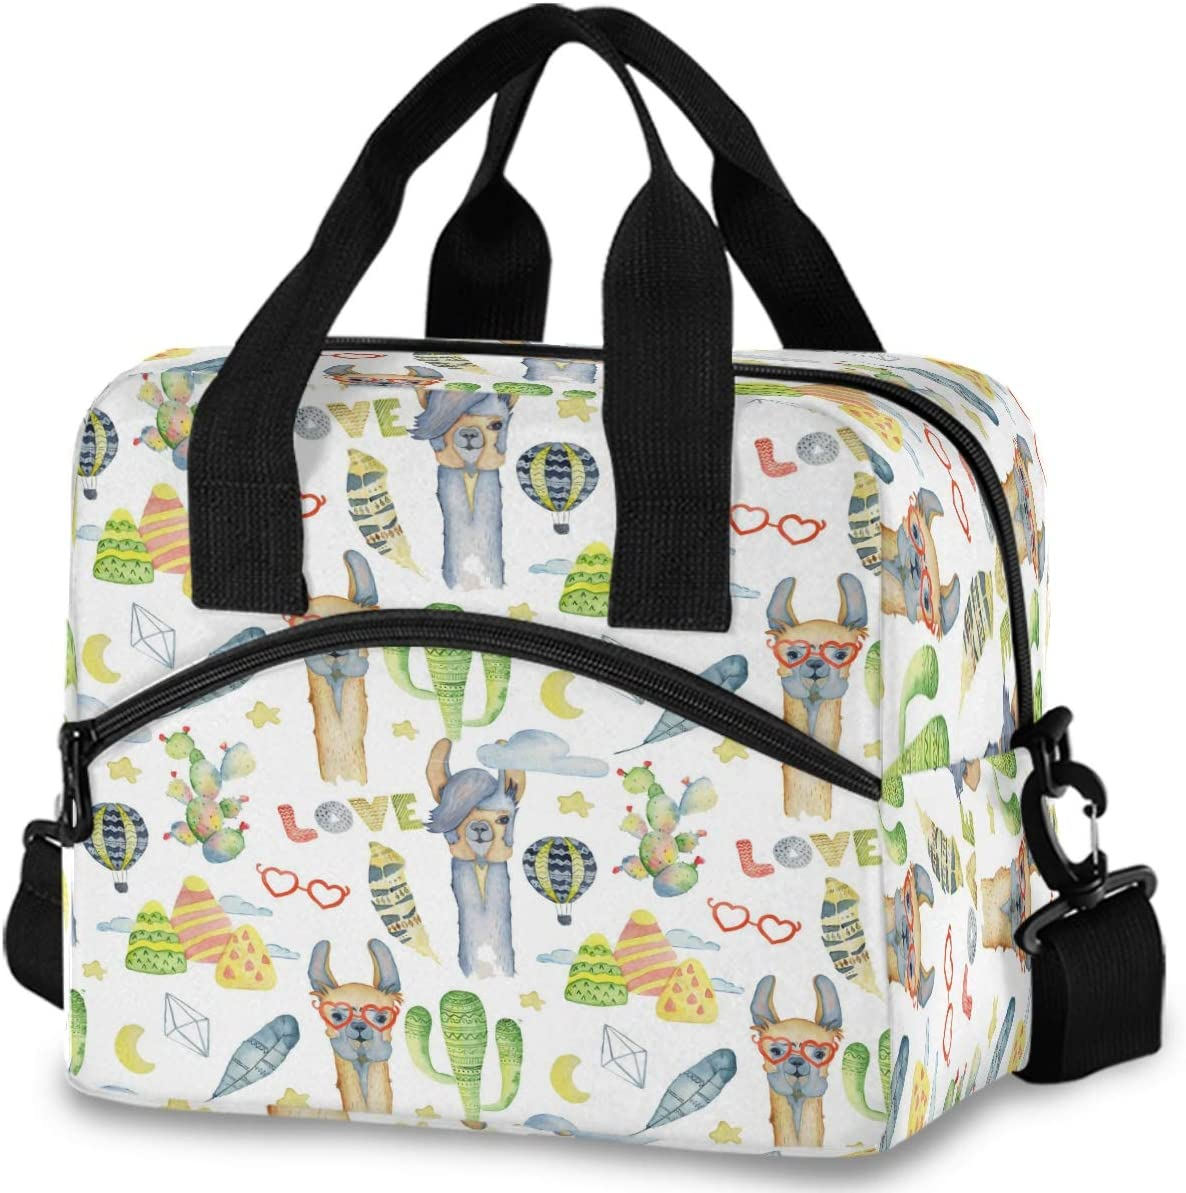 Oarencol Watercolor Llama Alpaca Cactus Insulated Lunch Tote Bag Tropical Animal Star Moon Reusable Cooler Lunch Box with Shoulder Strap for Women Men Work Picnic School Beach